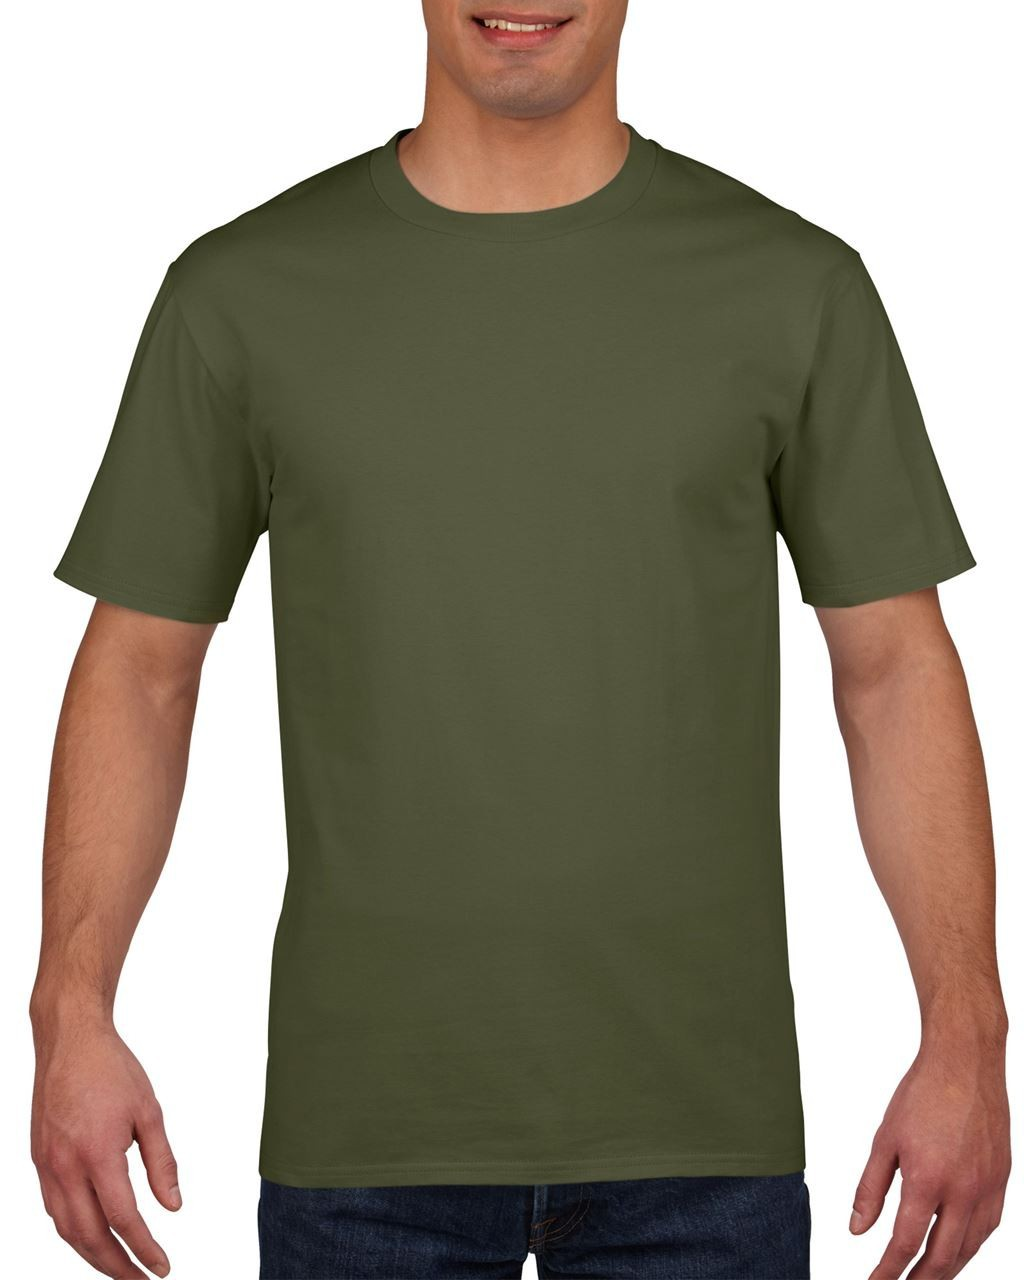 660ddd5f Gildan Premium Cotton Adult T-shirt, Military Green, 2XL (T-shirt ...